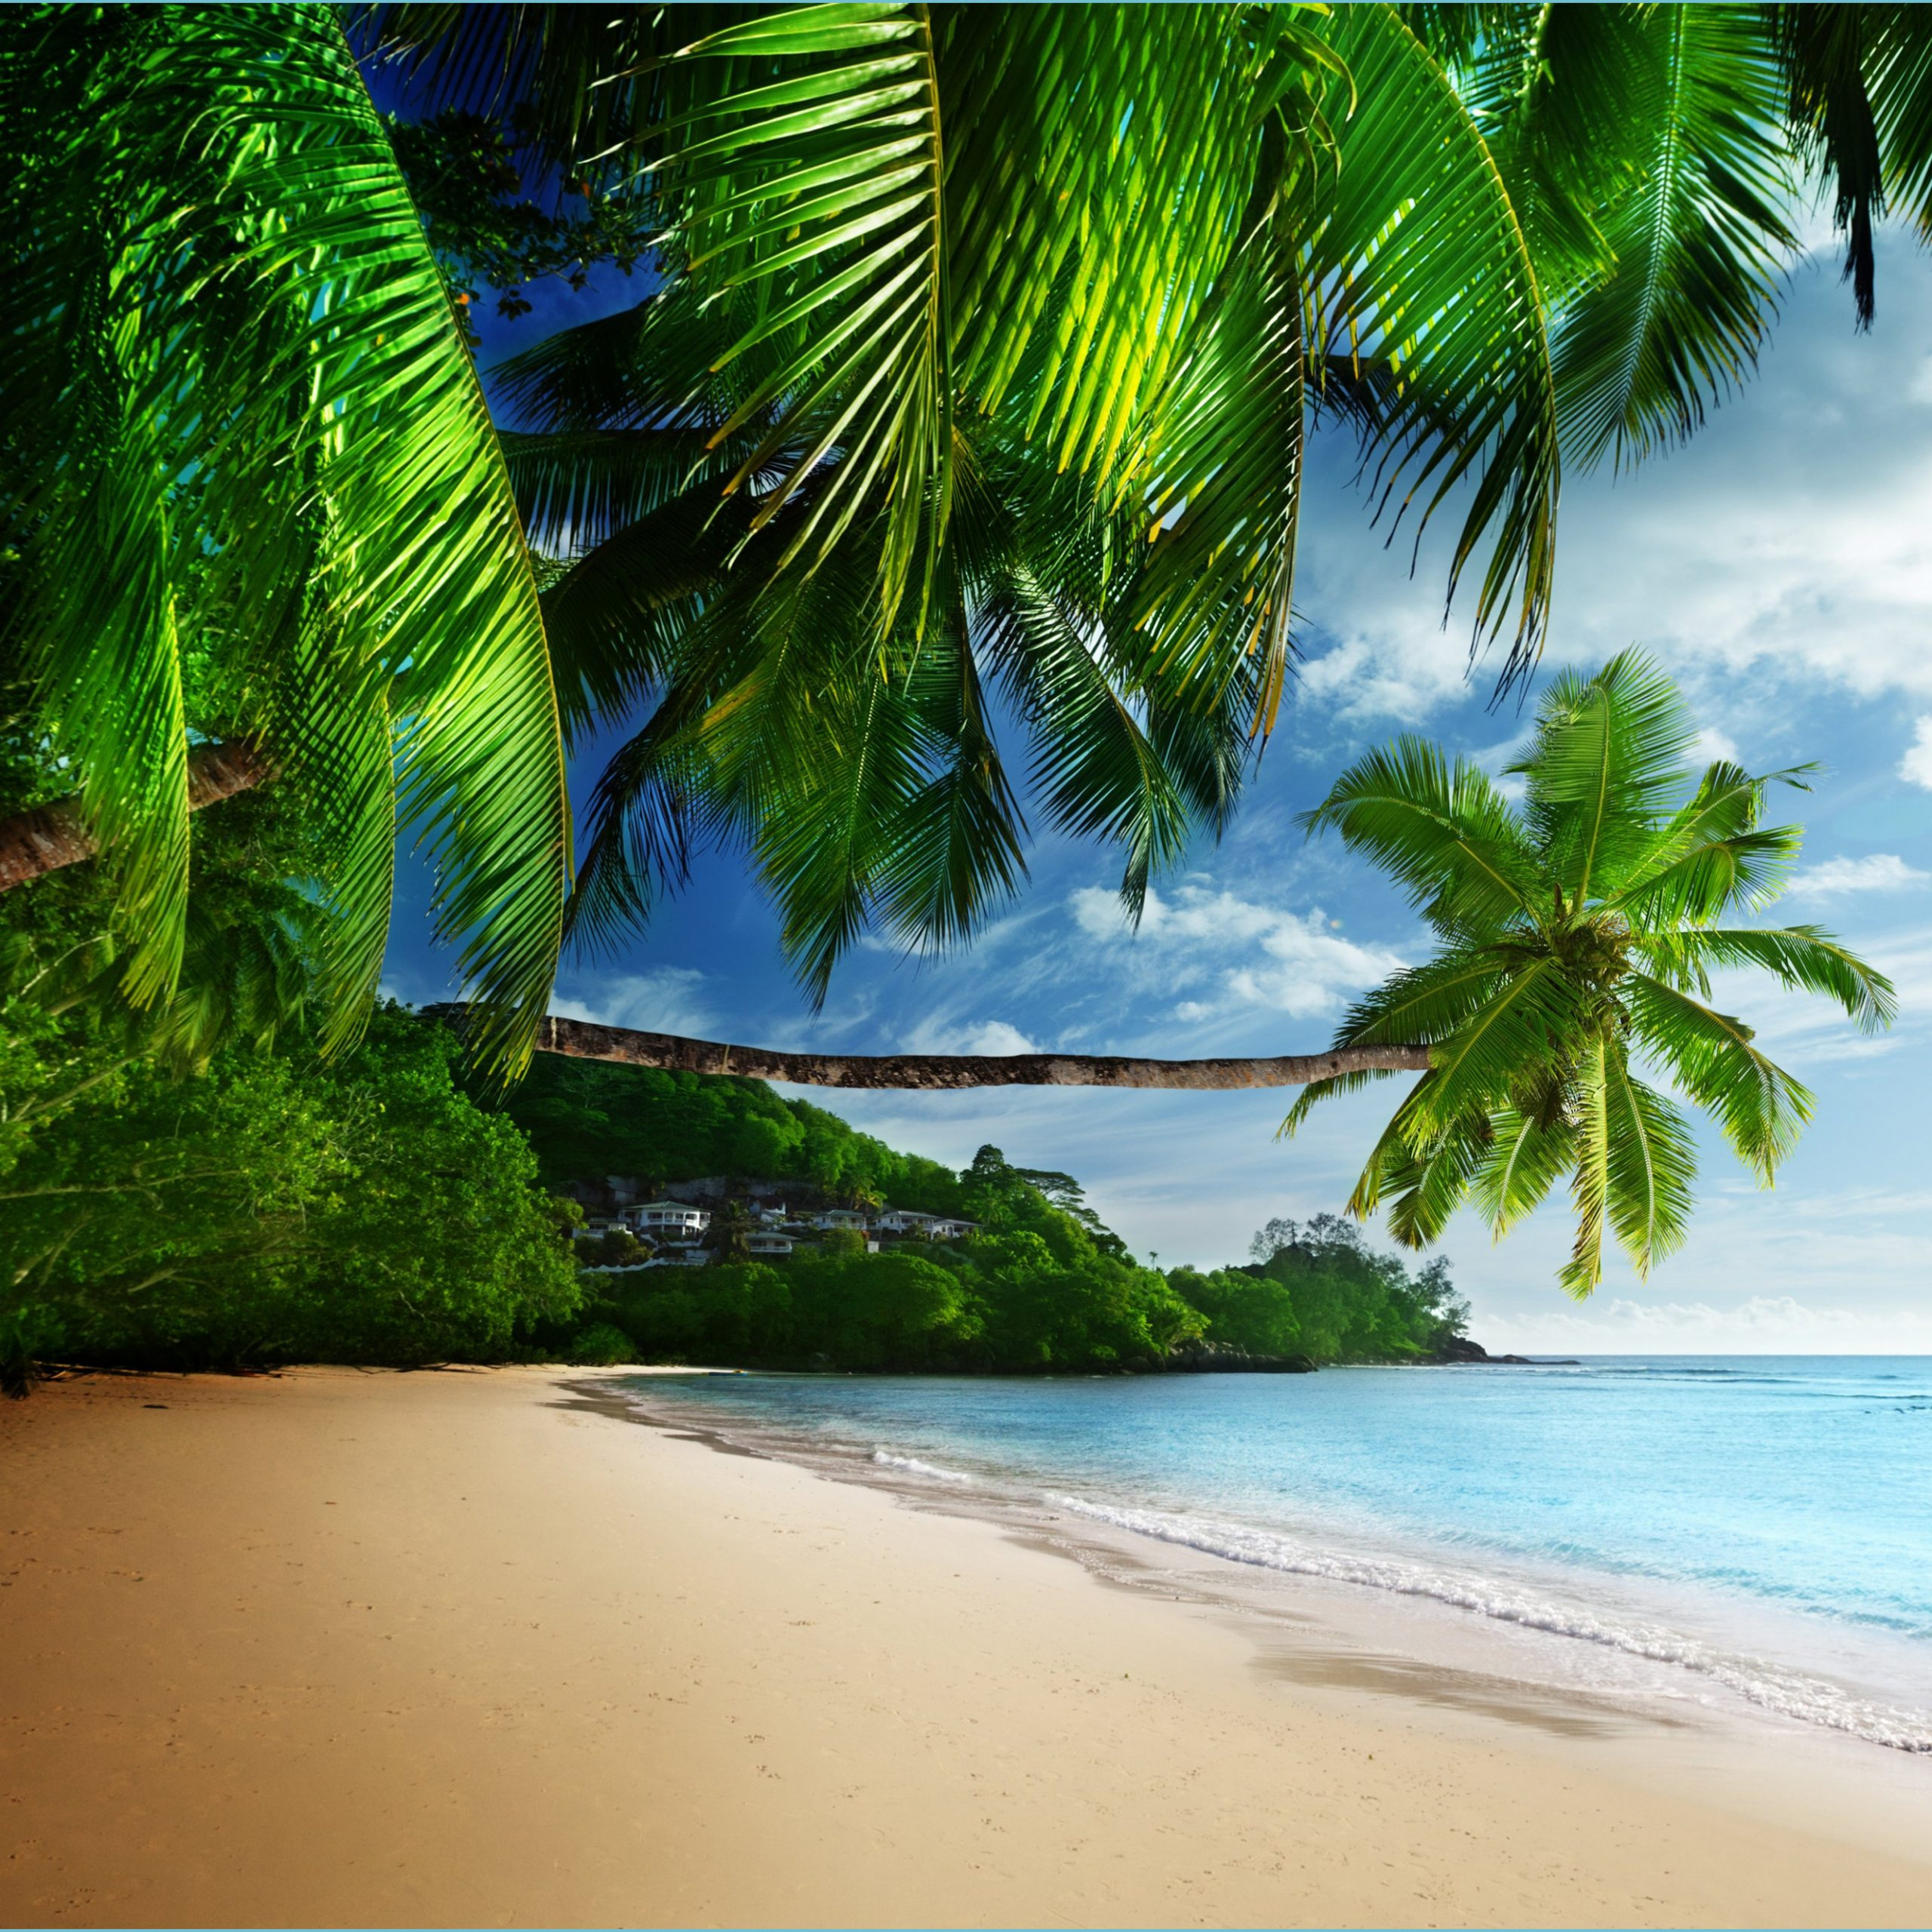 beach desktop wallpaper 14k hd x14 hd wallpaper 4k beach wallpaper